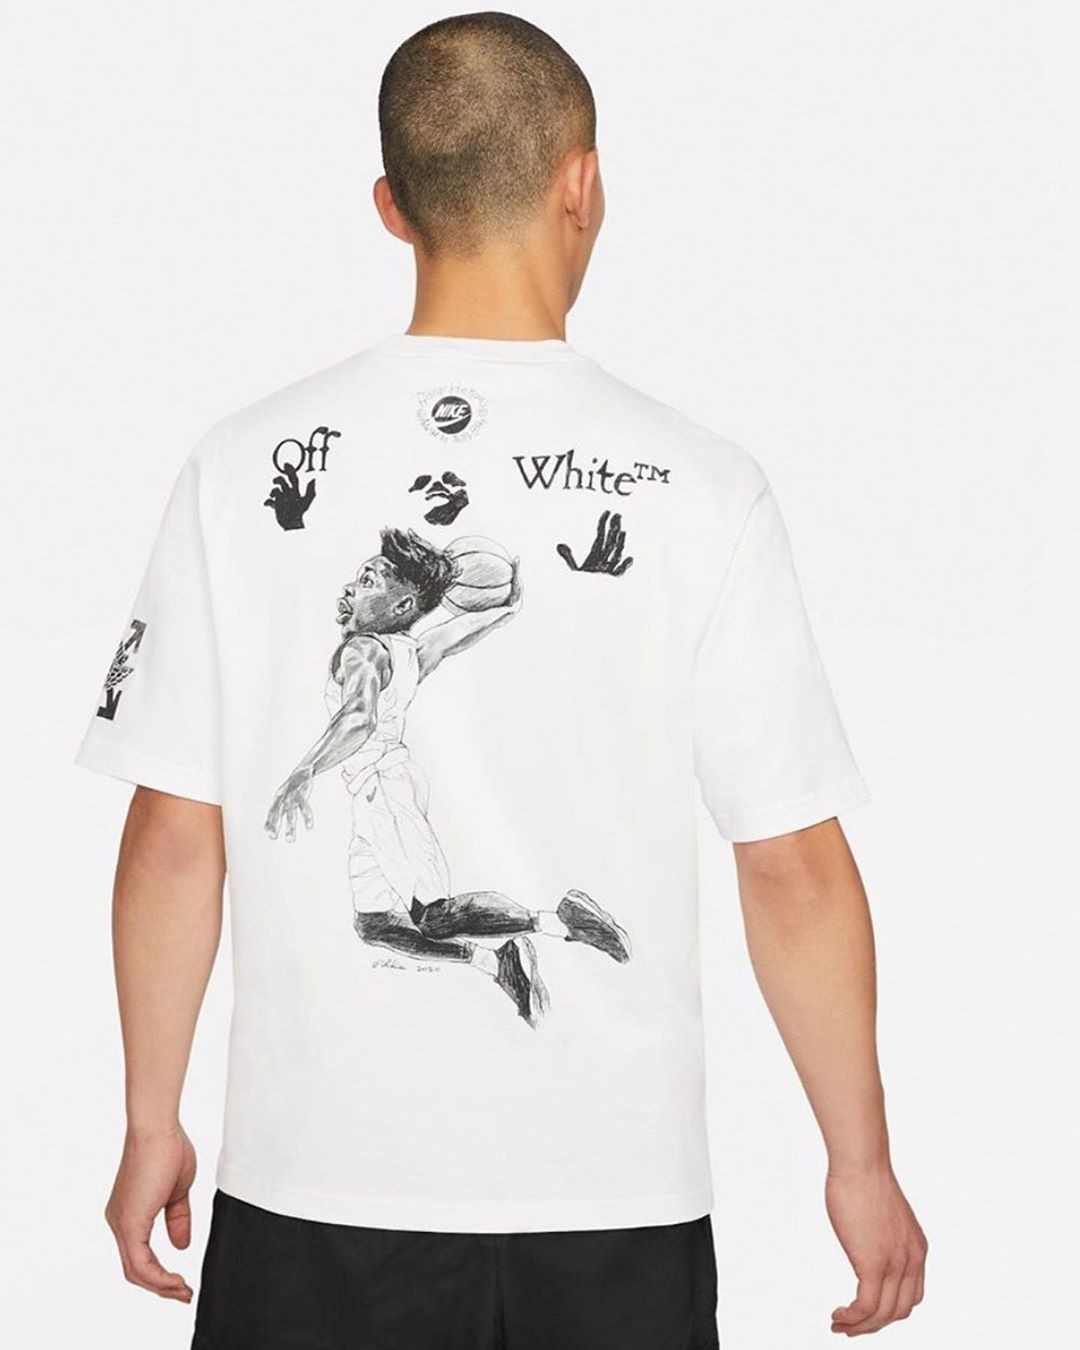 Off-White x Jordan Brand Air Jordan 5 Sail T-shirt